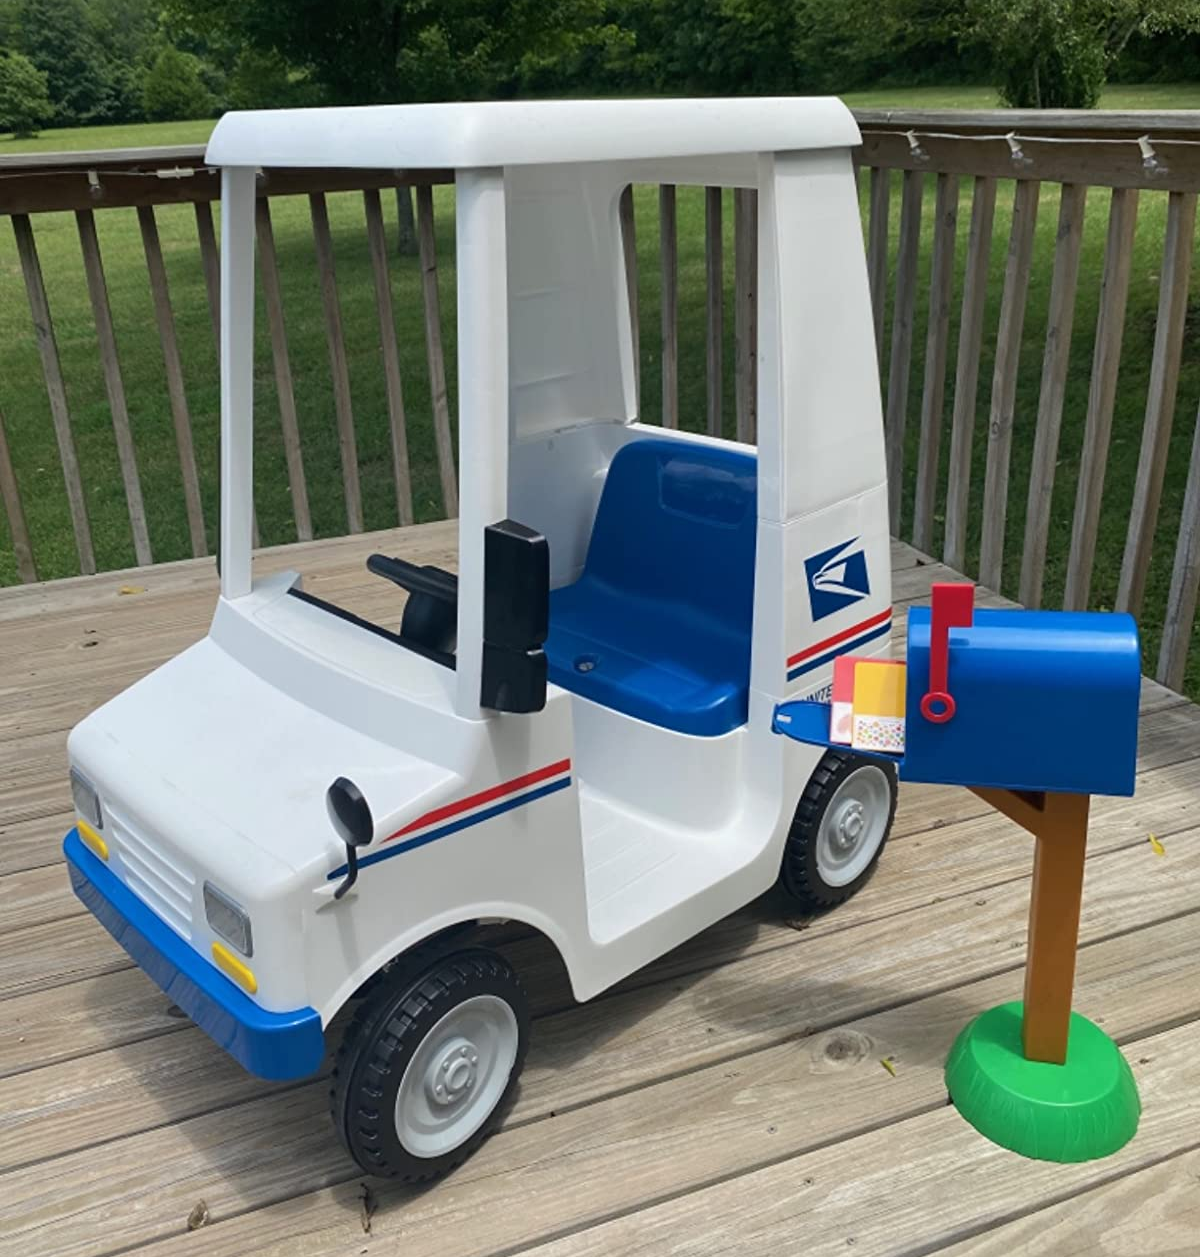 Toy USPS truck with plastic mail box and letters